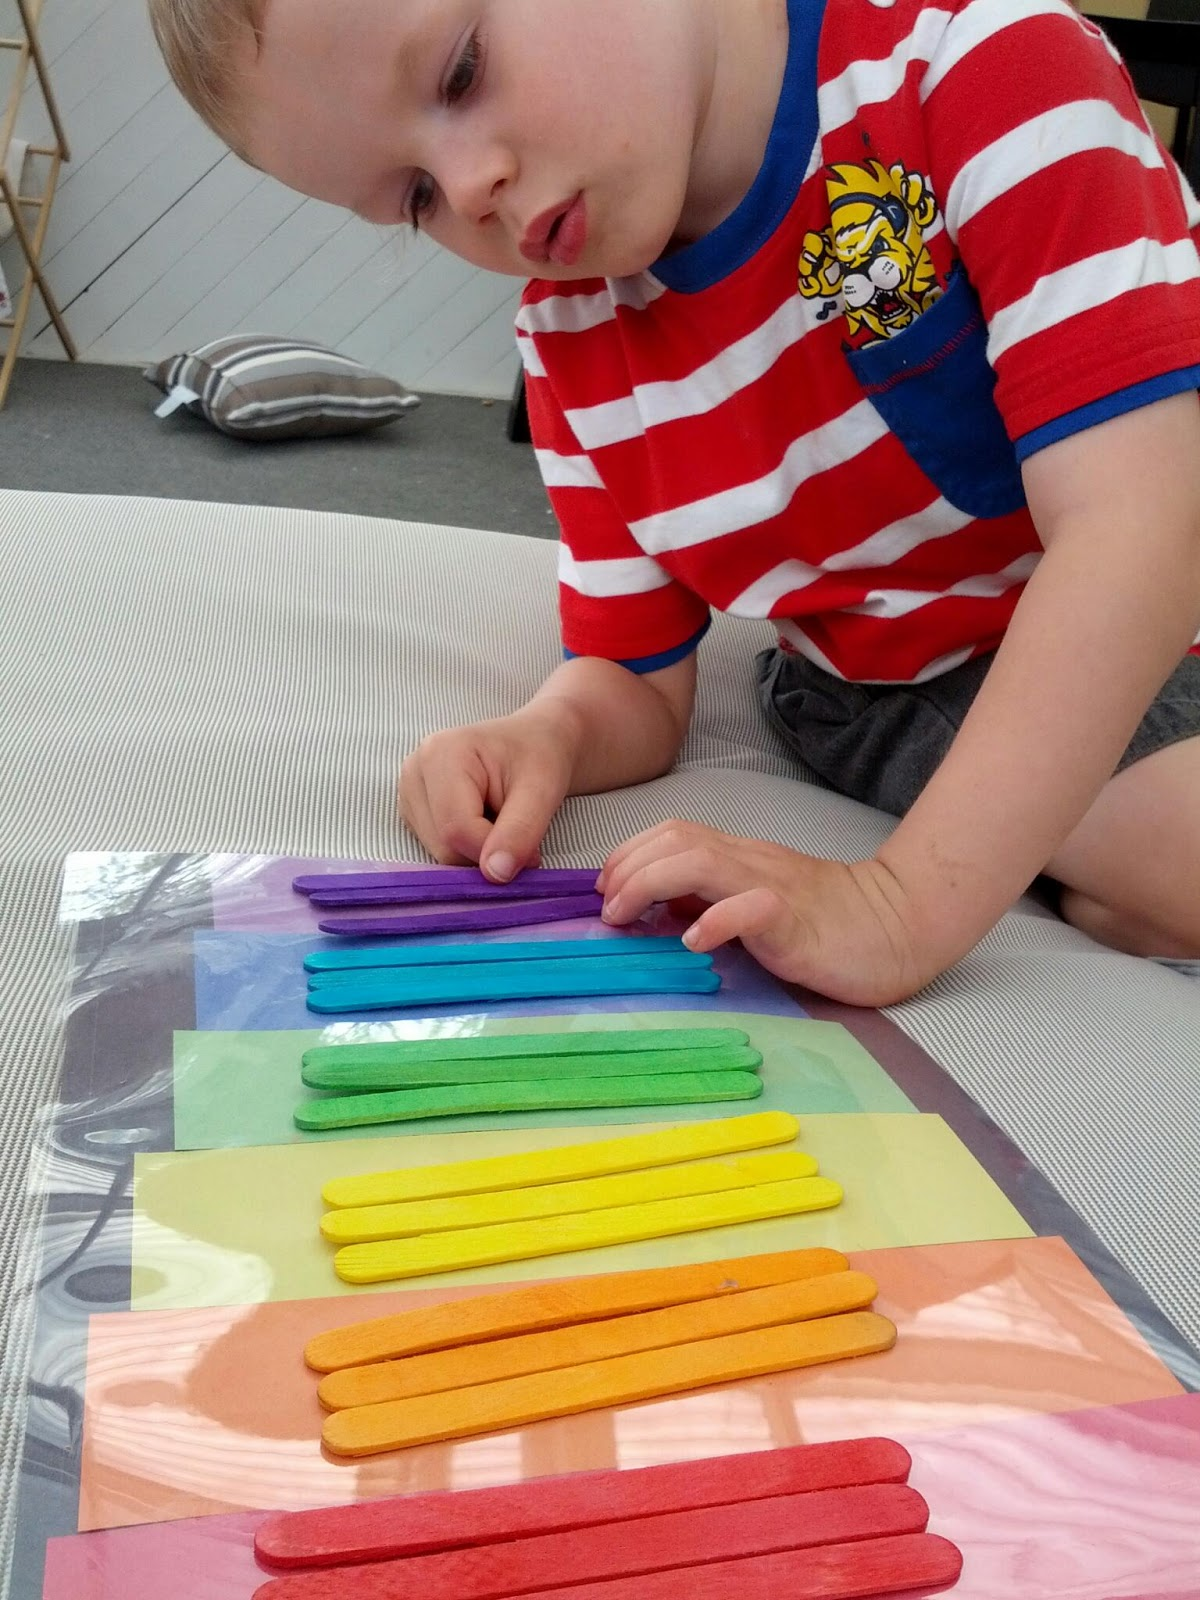 15 Simple Popsicle Stick Crafts For Kids To Make And Play ...